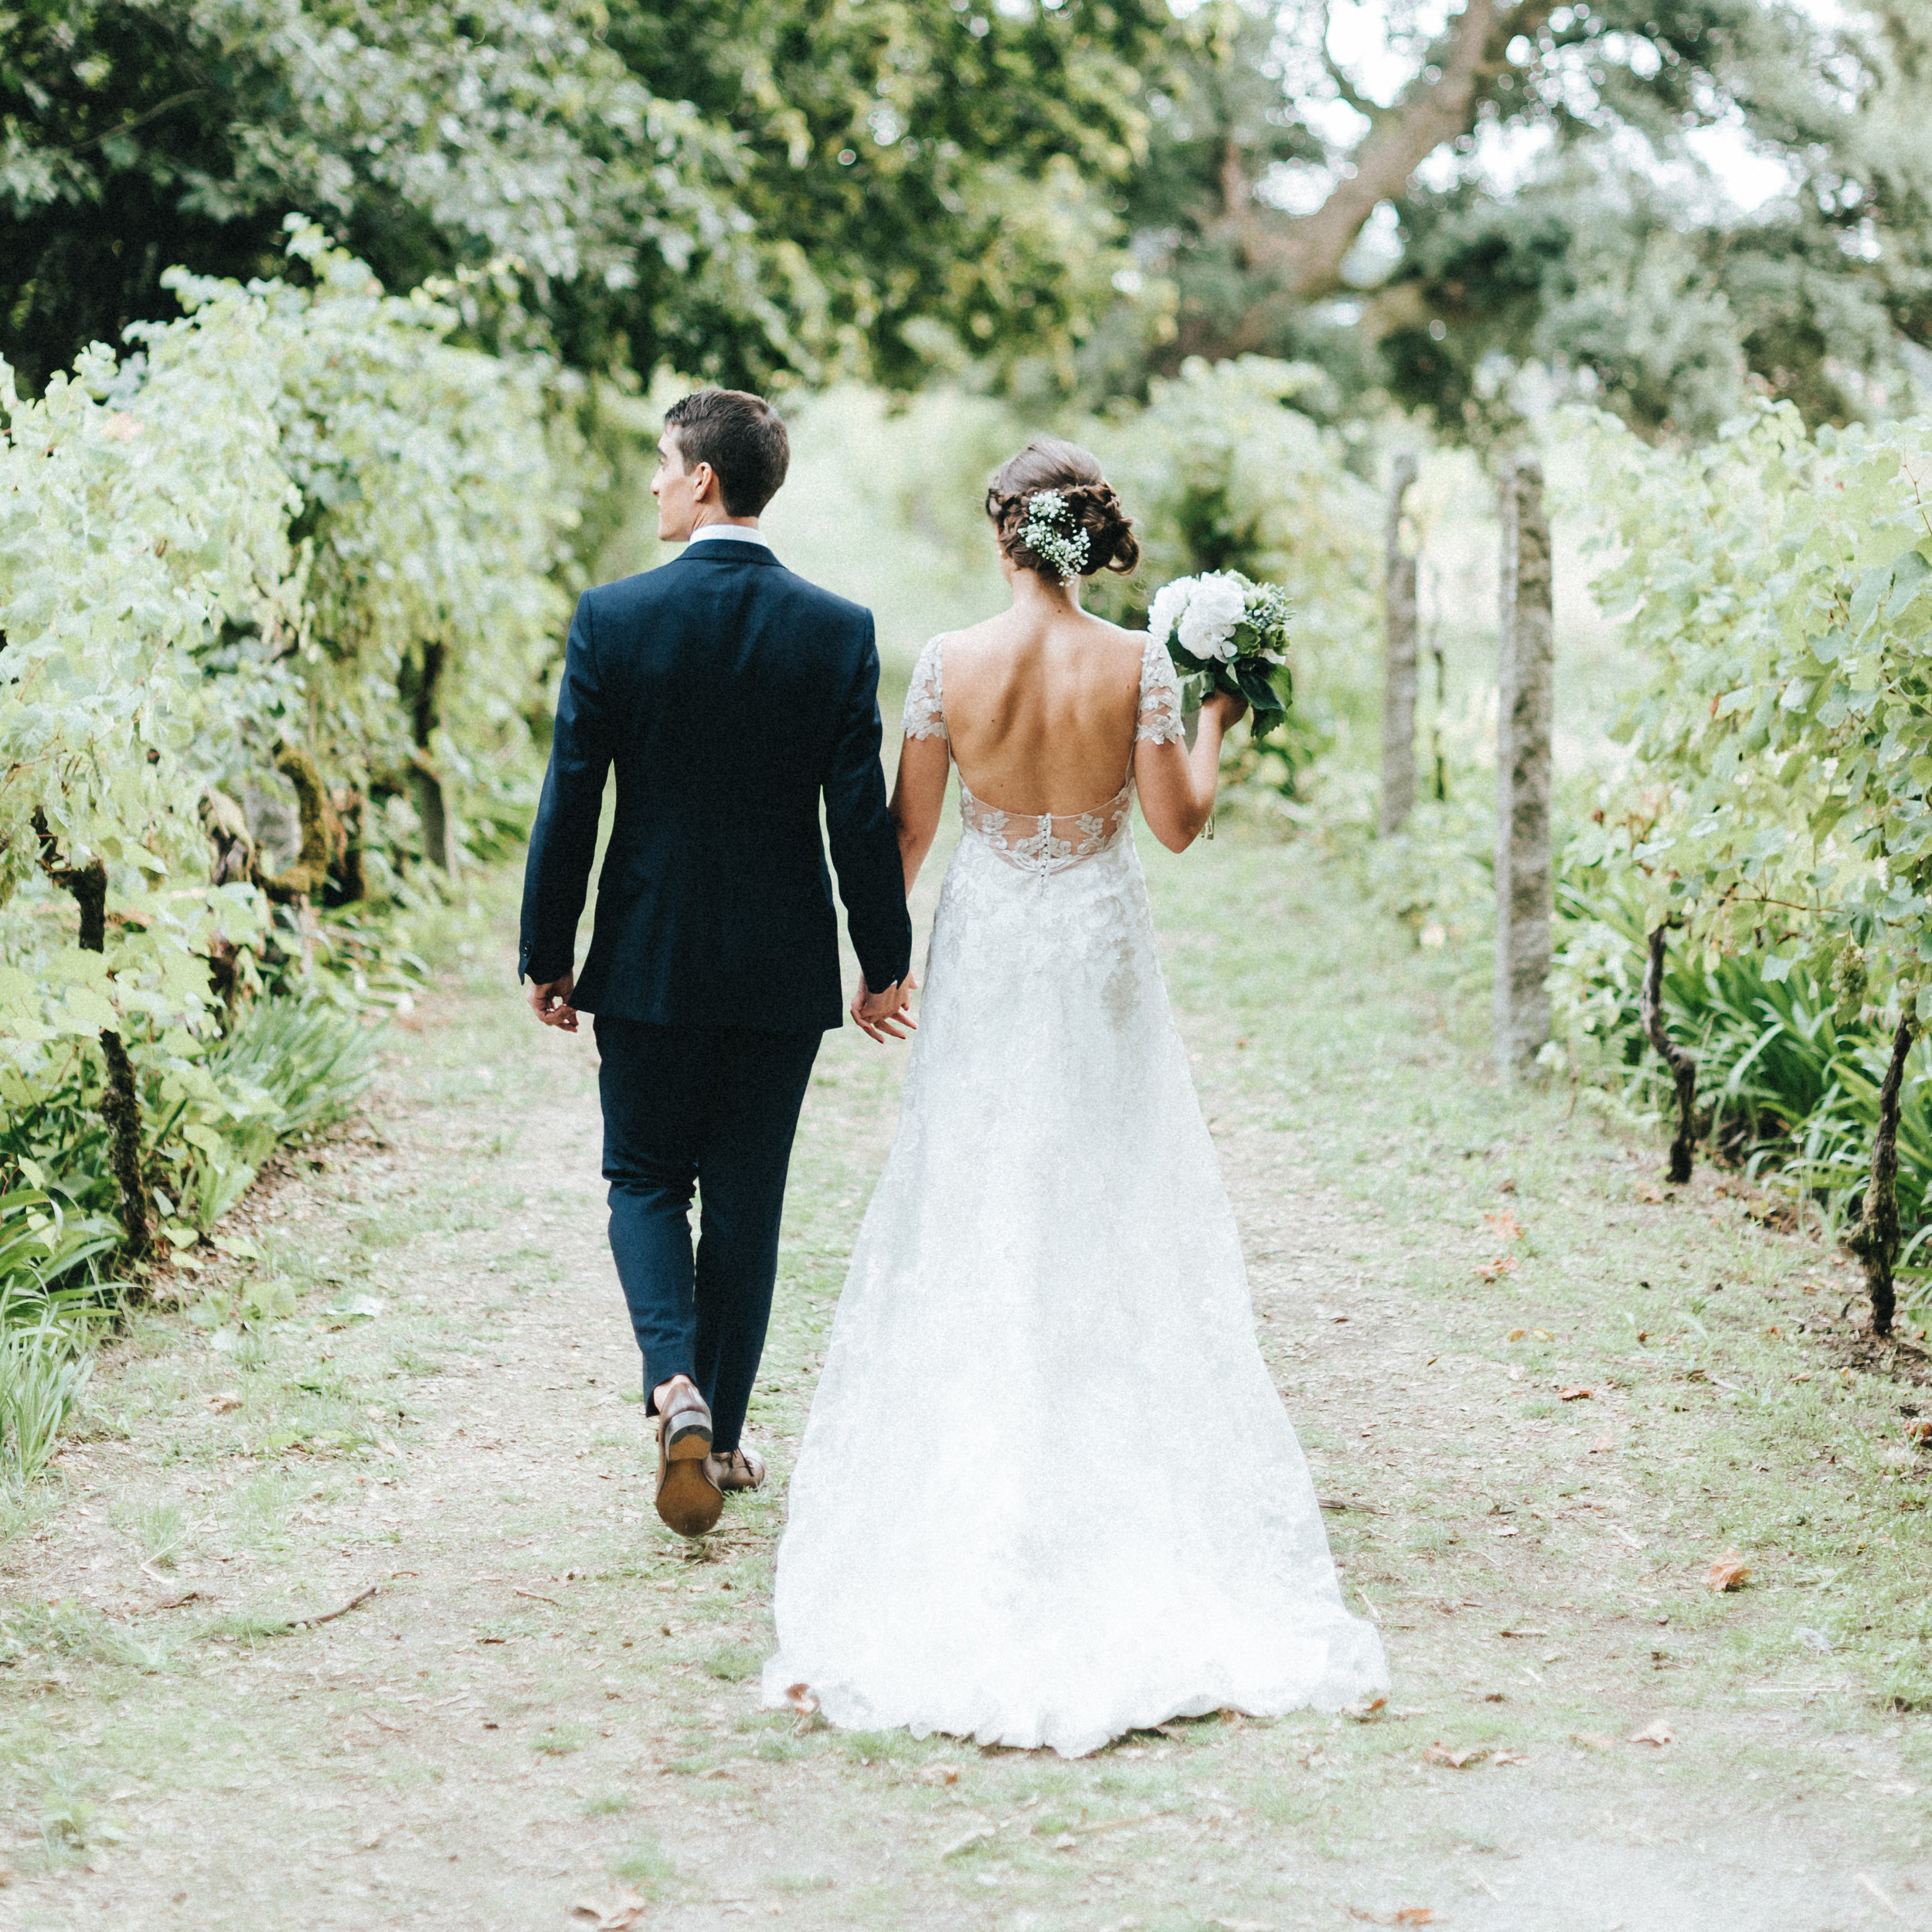 Filipa&Diogo - Quinta do Costeiro